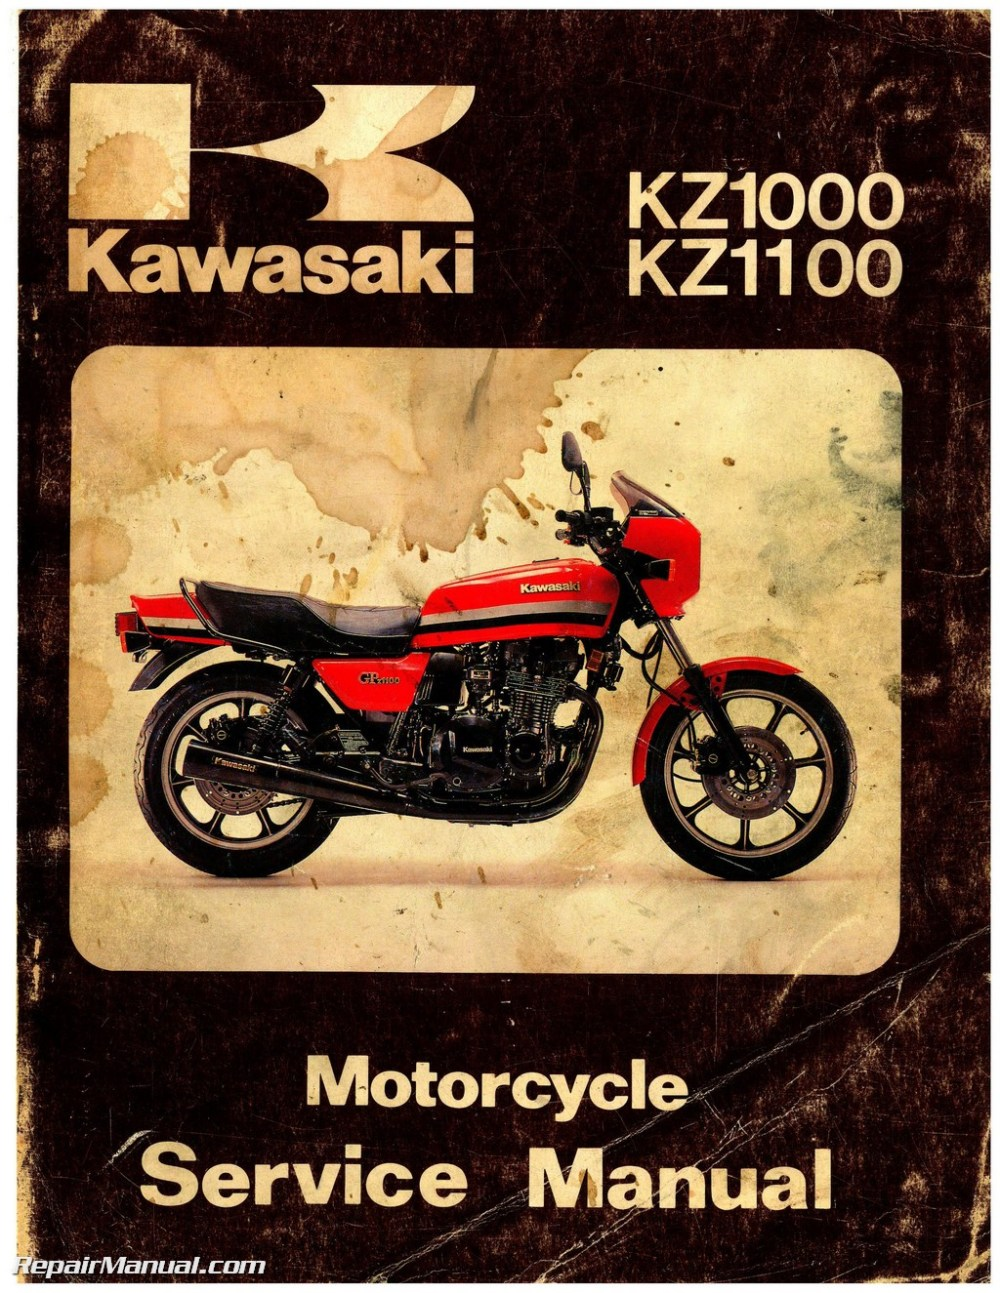 medium resolution of 1981 1982 kawasaki kz1000 kz1100 motorcycle repair service manual wiring an exhaust fan 78 kz1000 b2 wiring schematic